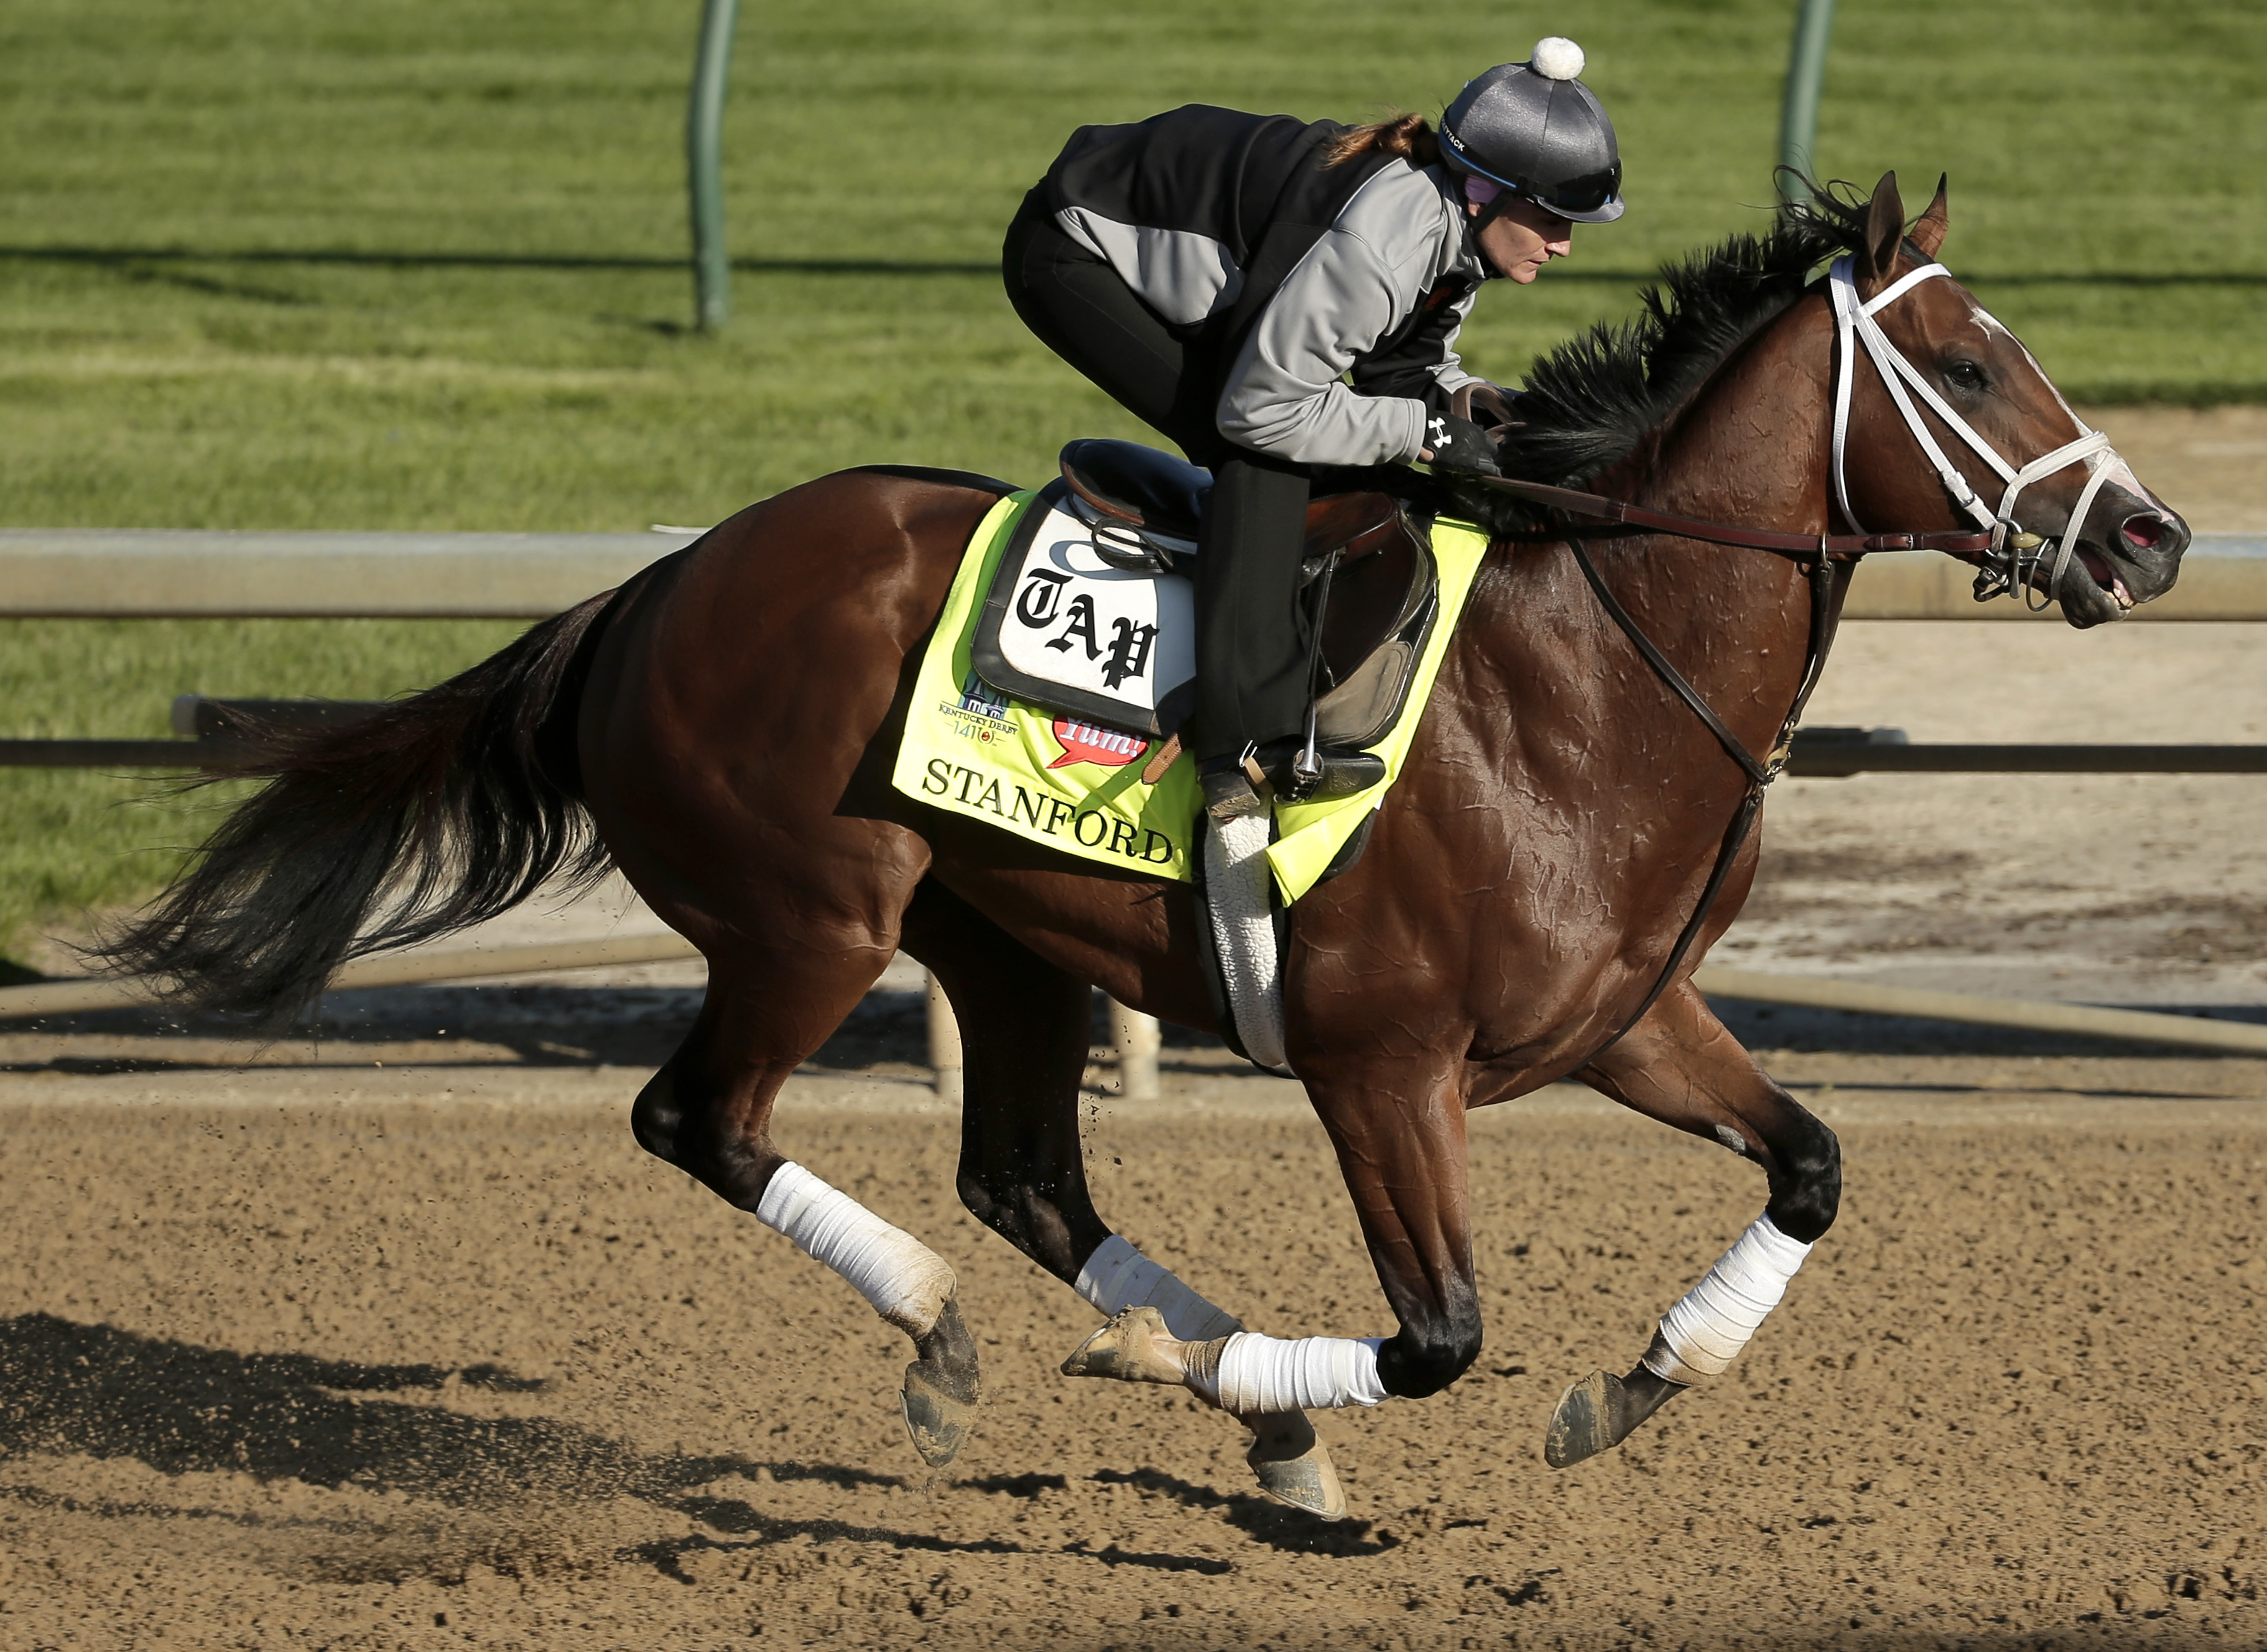 Kentucky Derby hopeful Stanford is ridden by exercise rider Isabelle Bourez during a morning workout at Churchill Downs Tuesday, April 28, 2015, in Louisville, Ky. (AP Photo/Charlie Riedel)